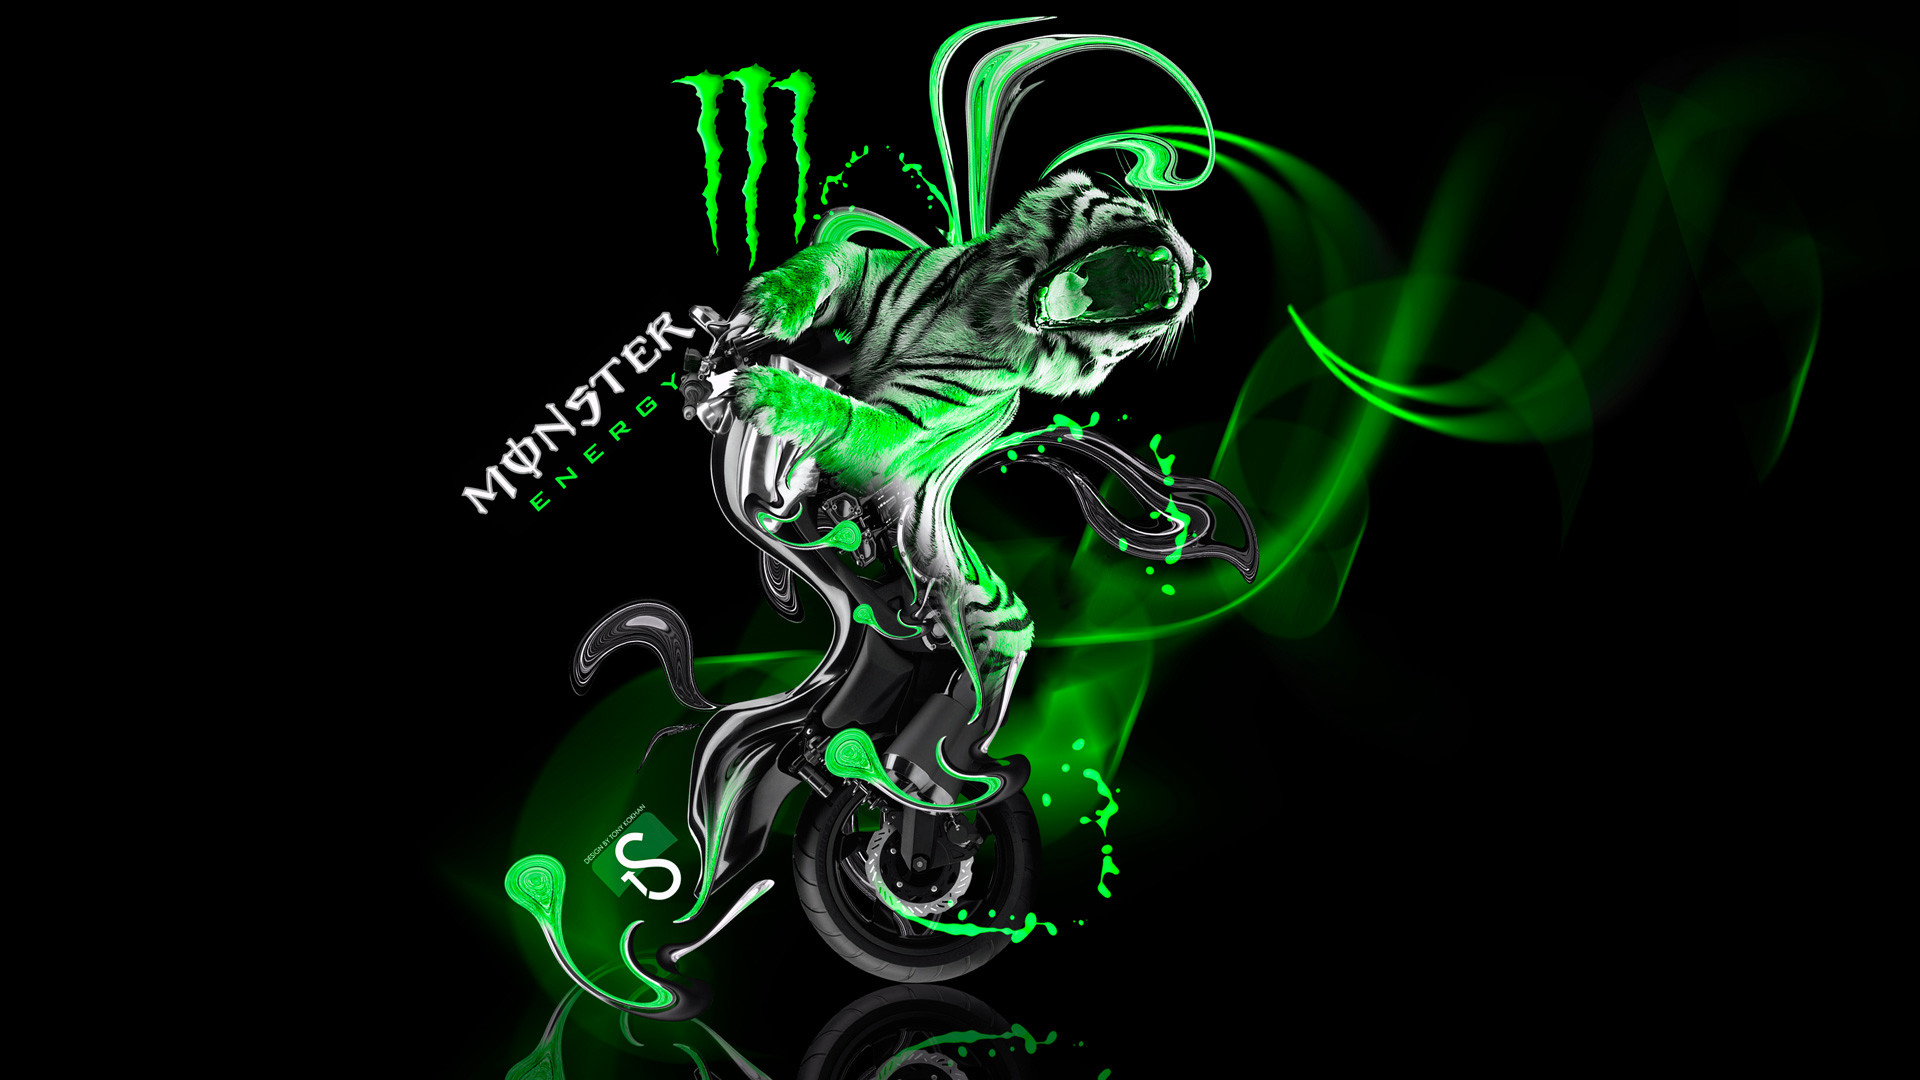 cool monster wallpapers (65+ images)